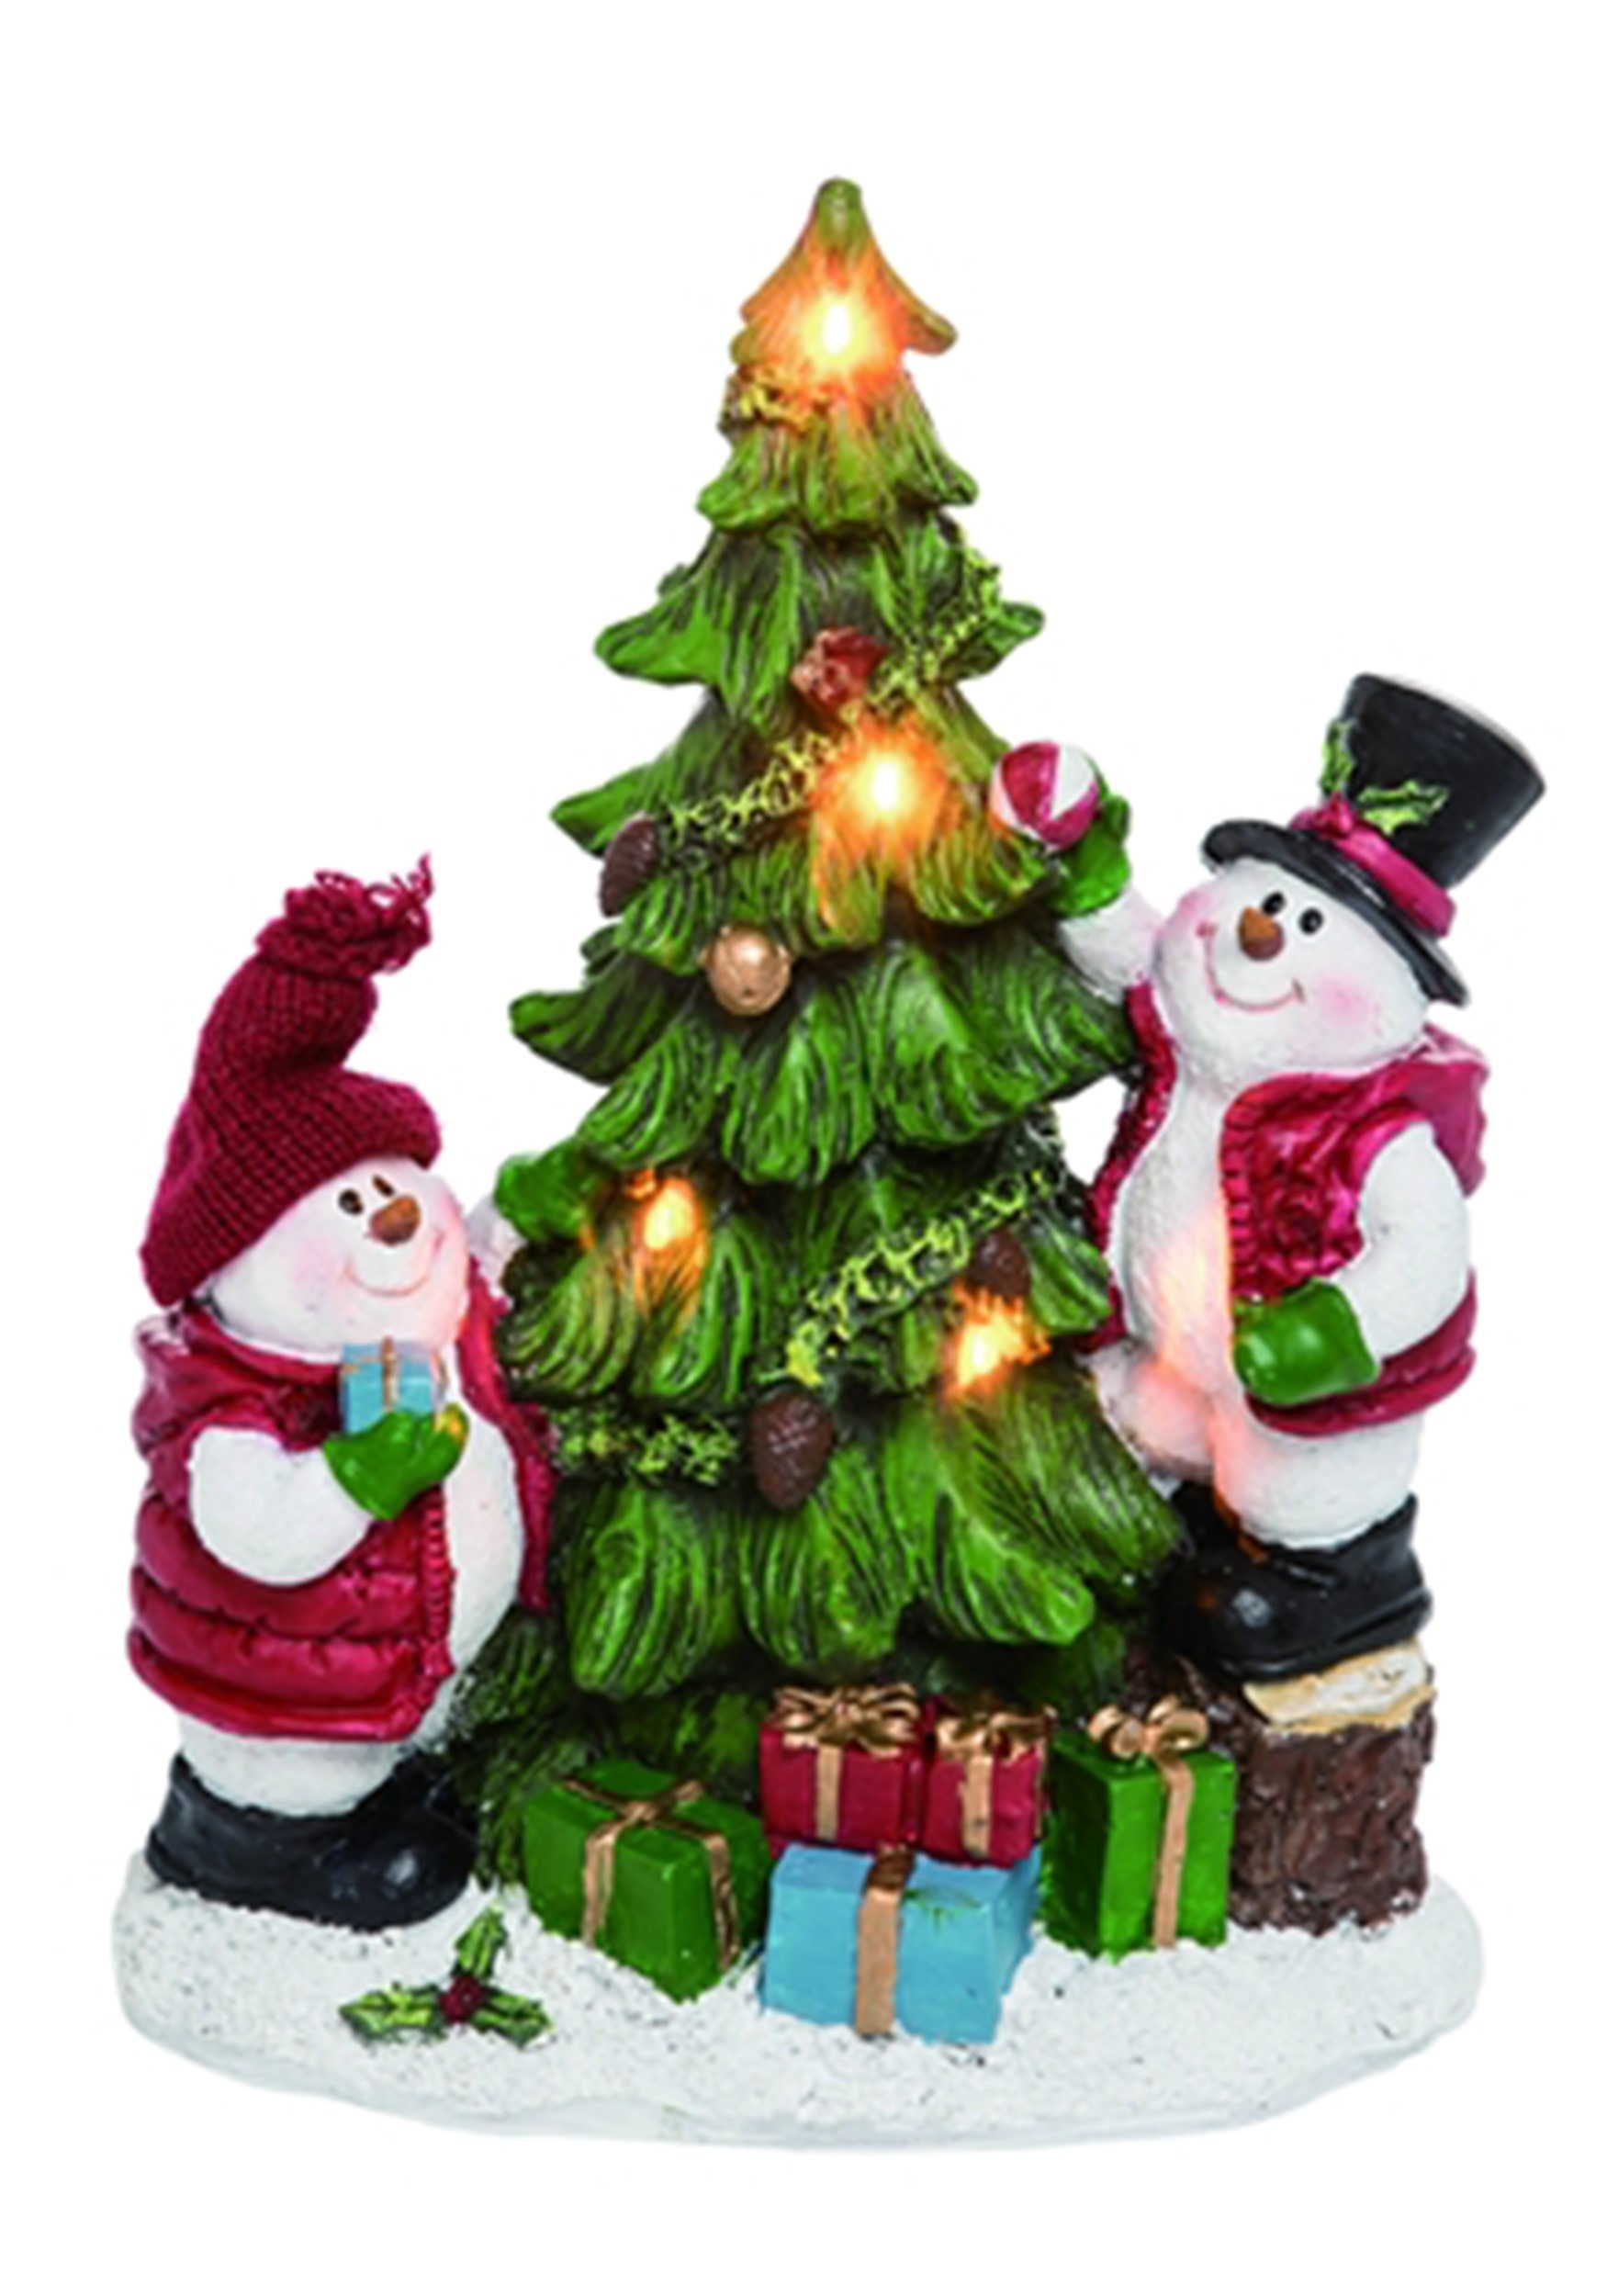 Clever Resin Light Up Snowman Decorating Tree Christmas Decor